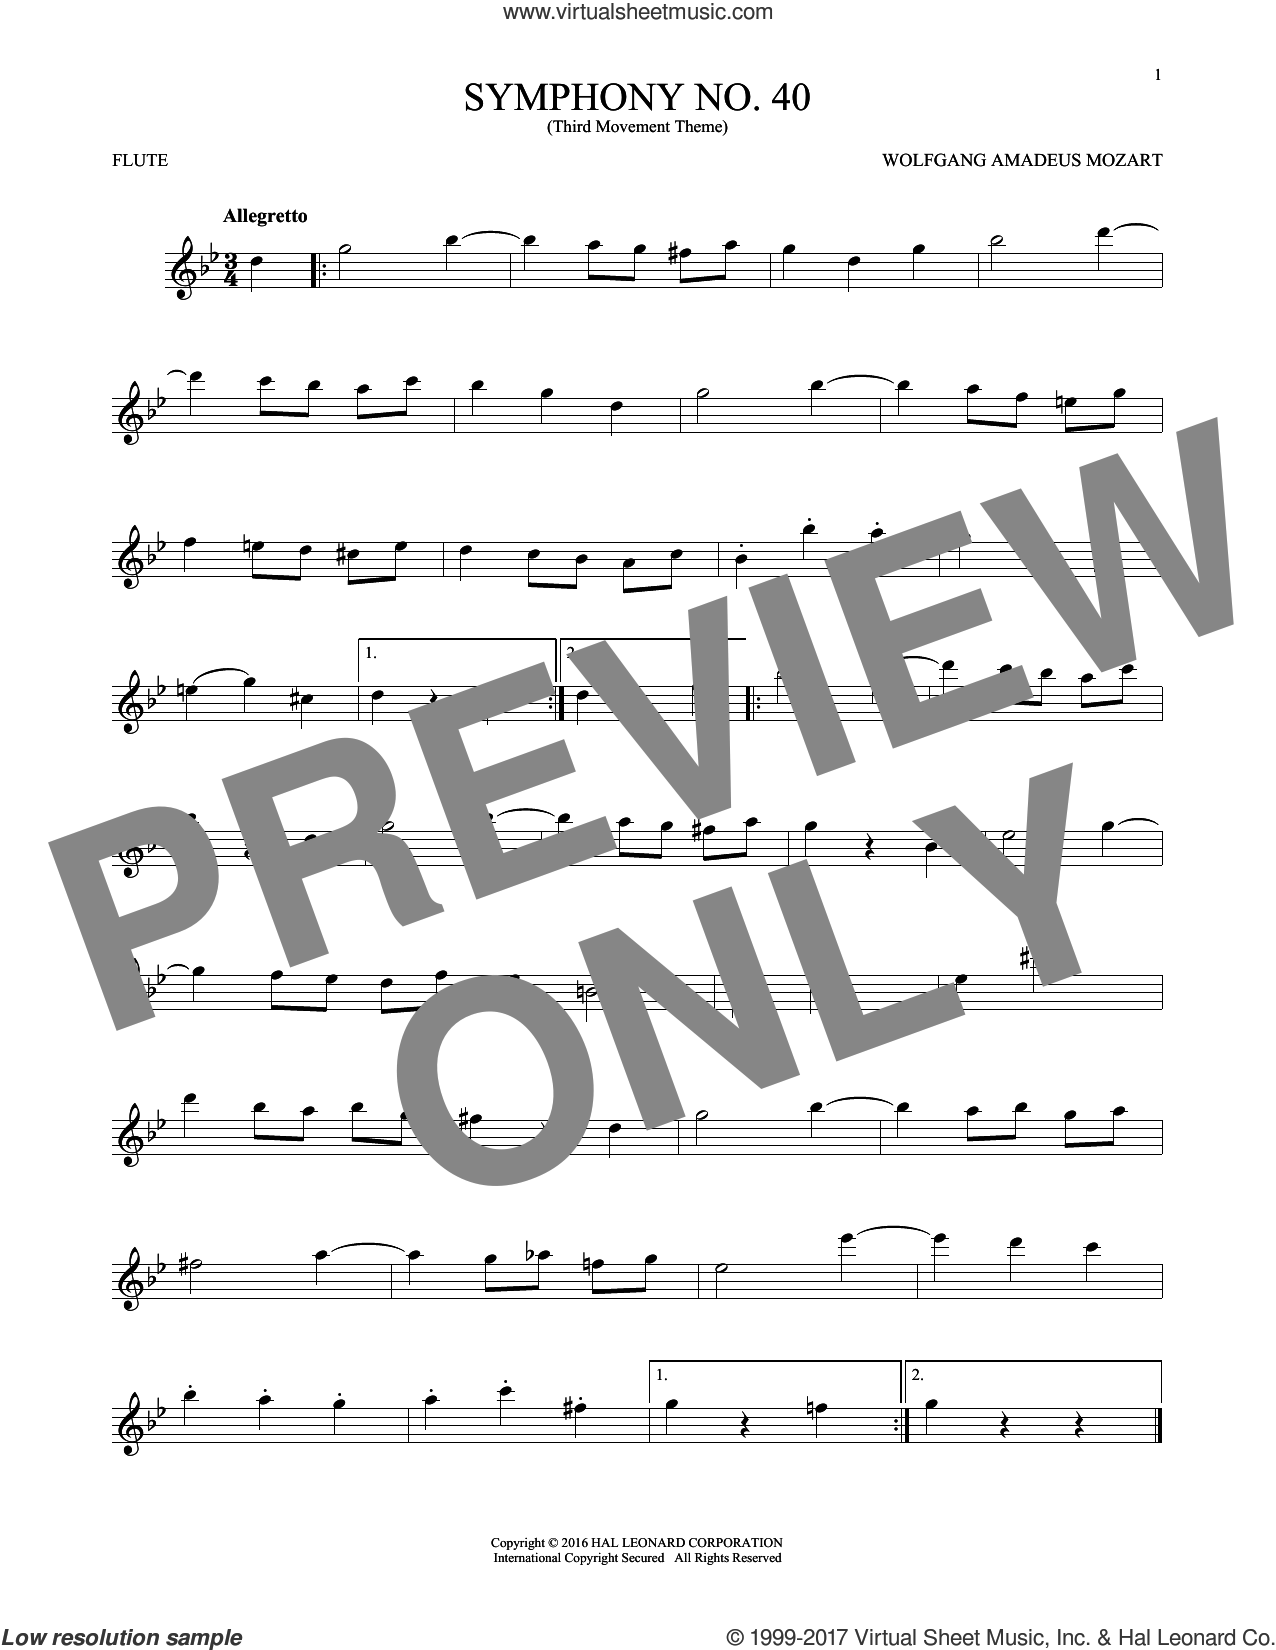 Symphony No. 40 In G Minor, Third Movement ('Minuet') sheet music for flute solo by Wolfgang Amadeus Mozart, classical score, intermediate skill level